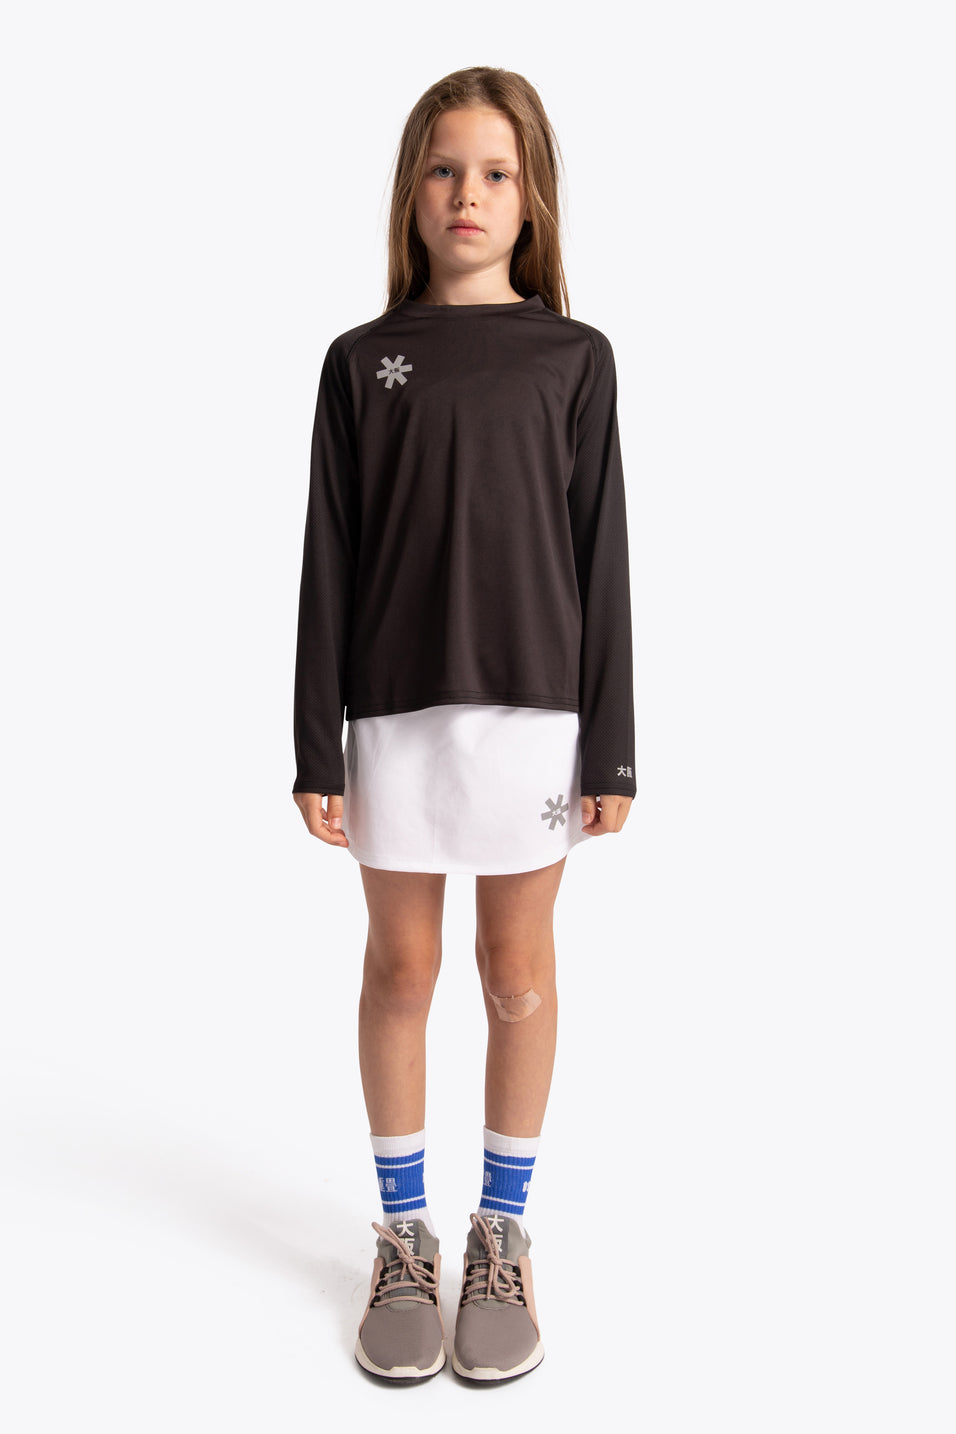 kids sports tee long sleeve